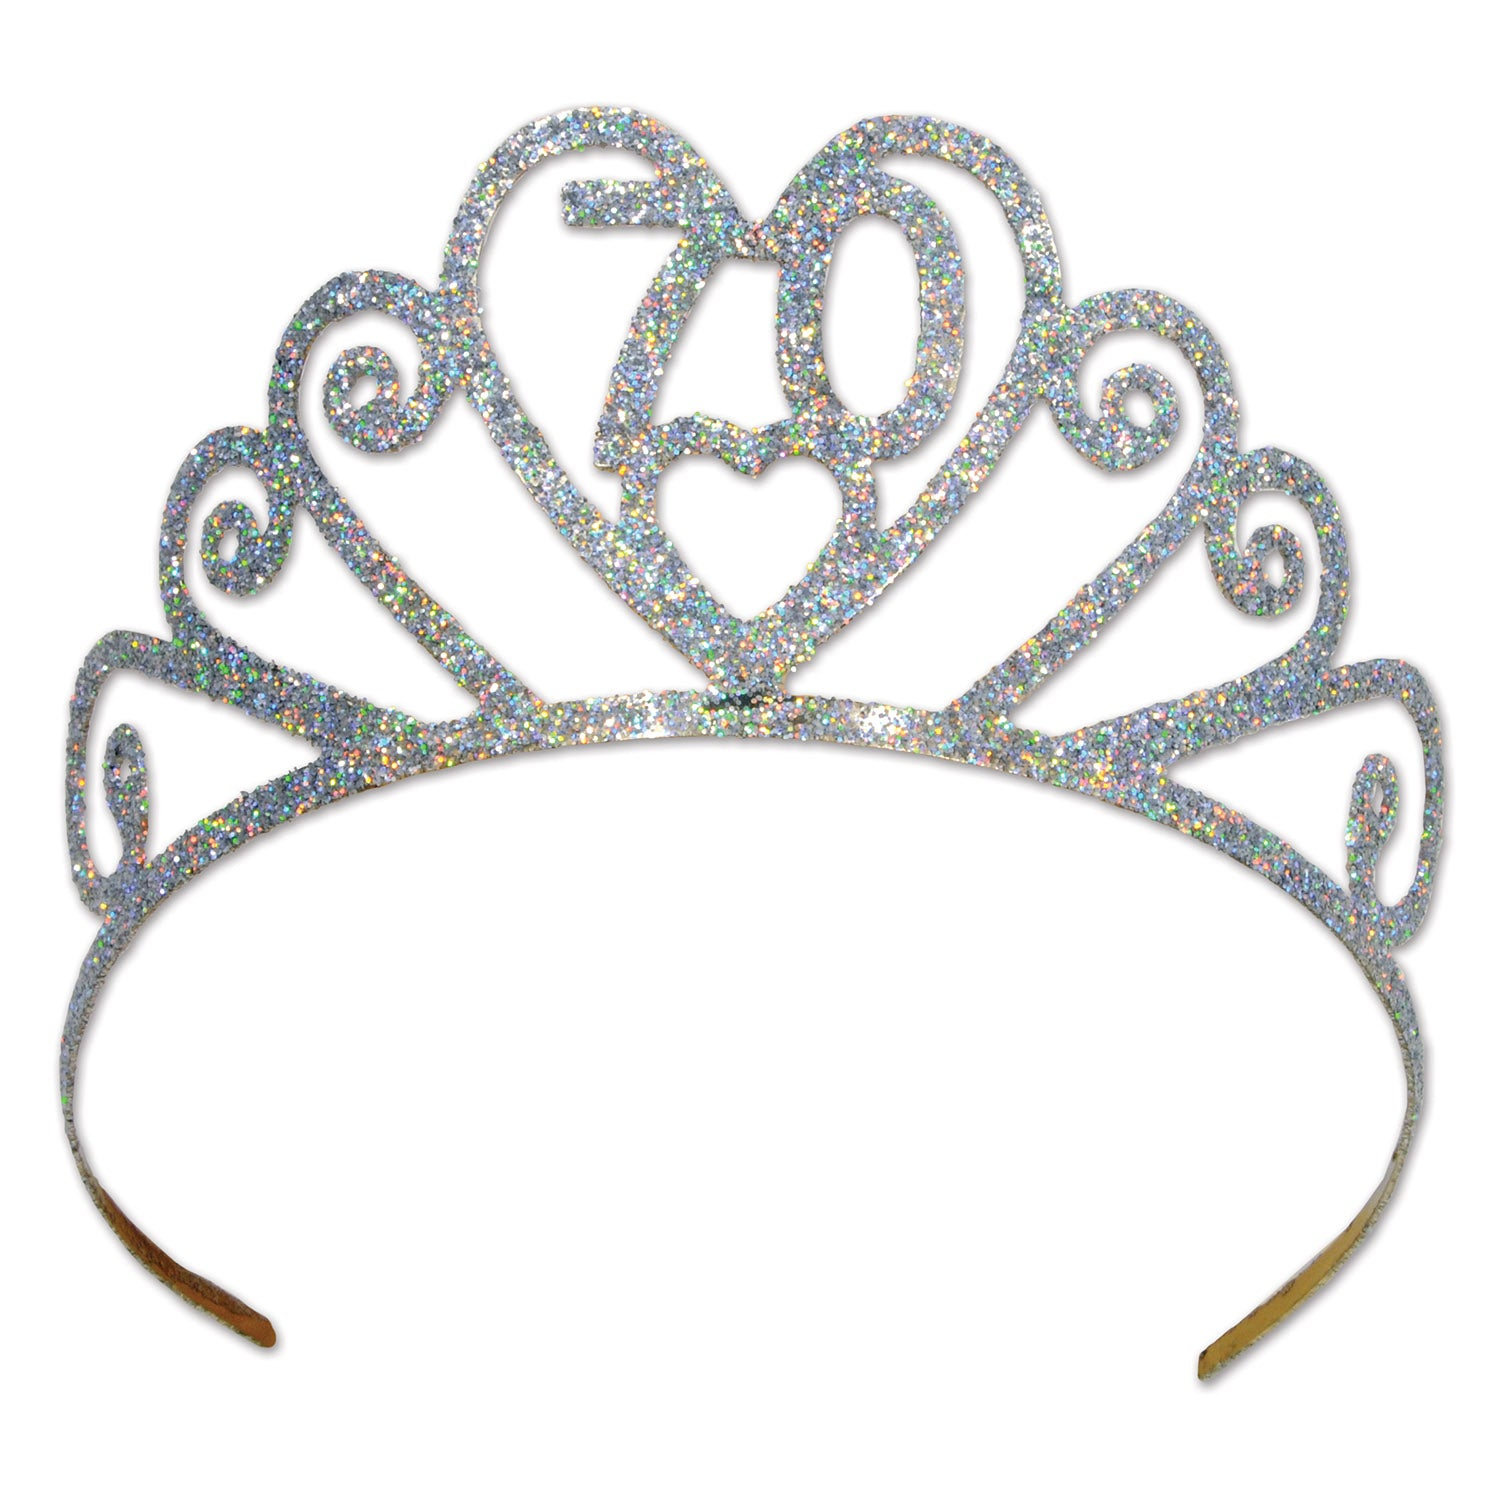 Glittered Metal 70 Tiara by Beistle - 70th Birthday Party Decorations